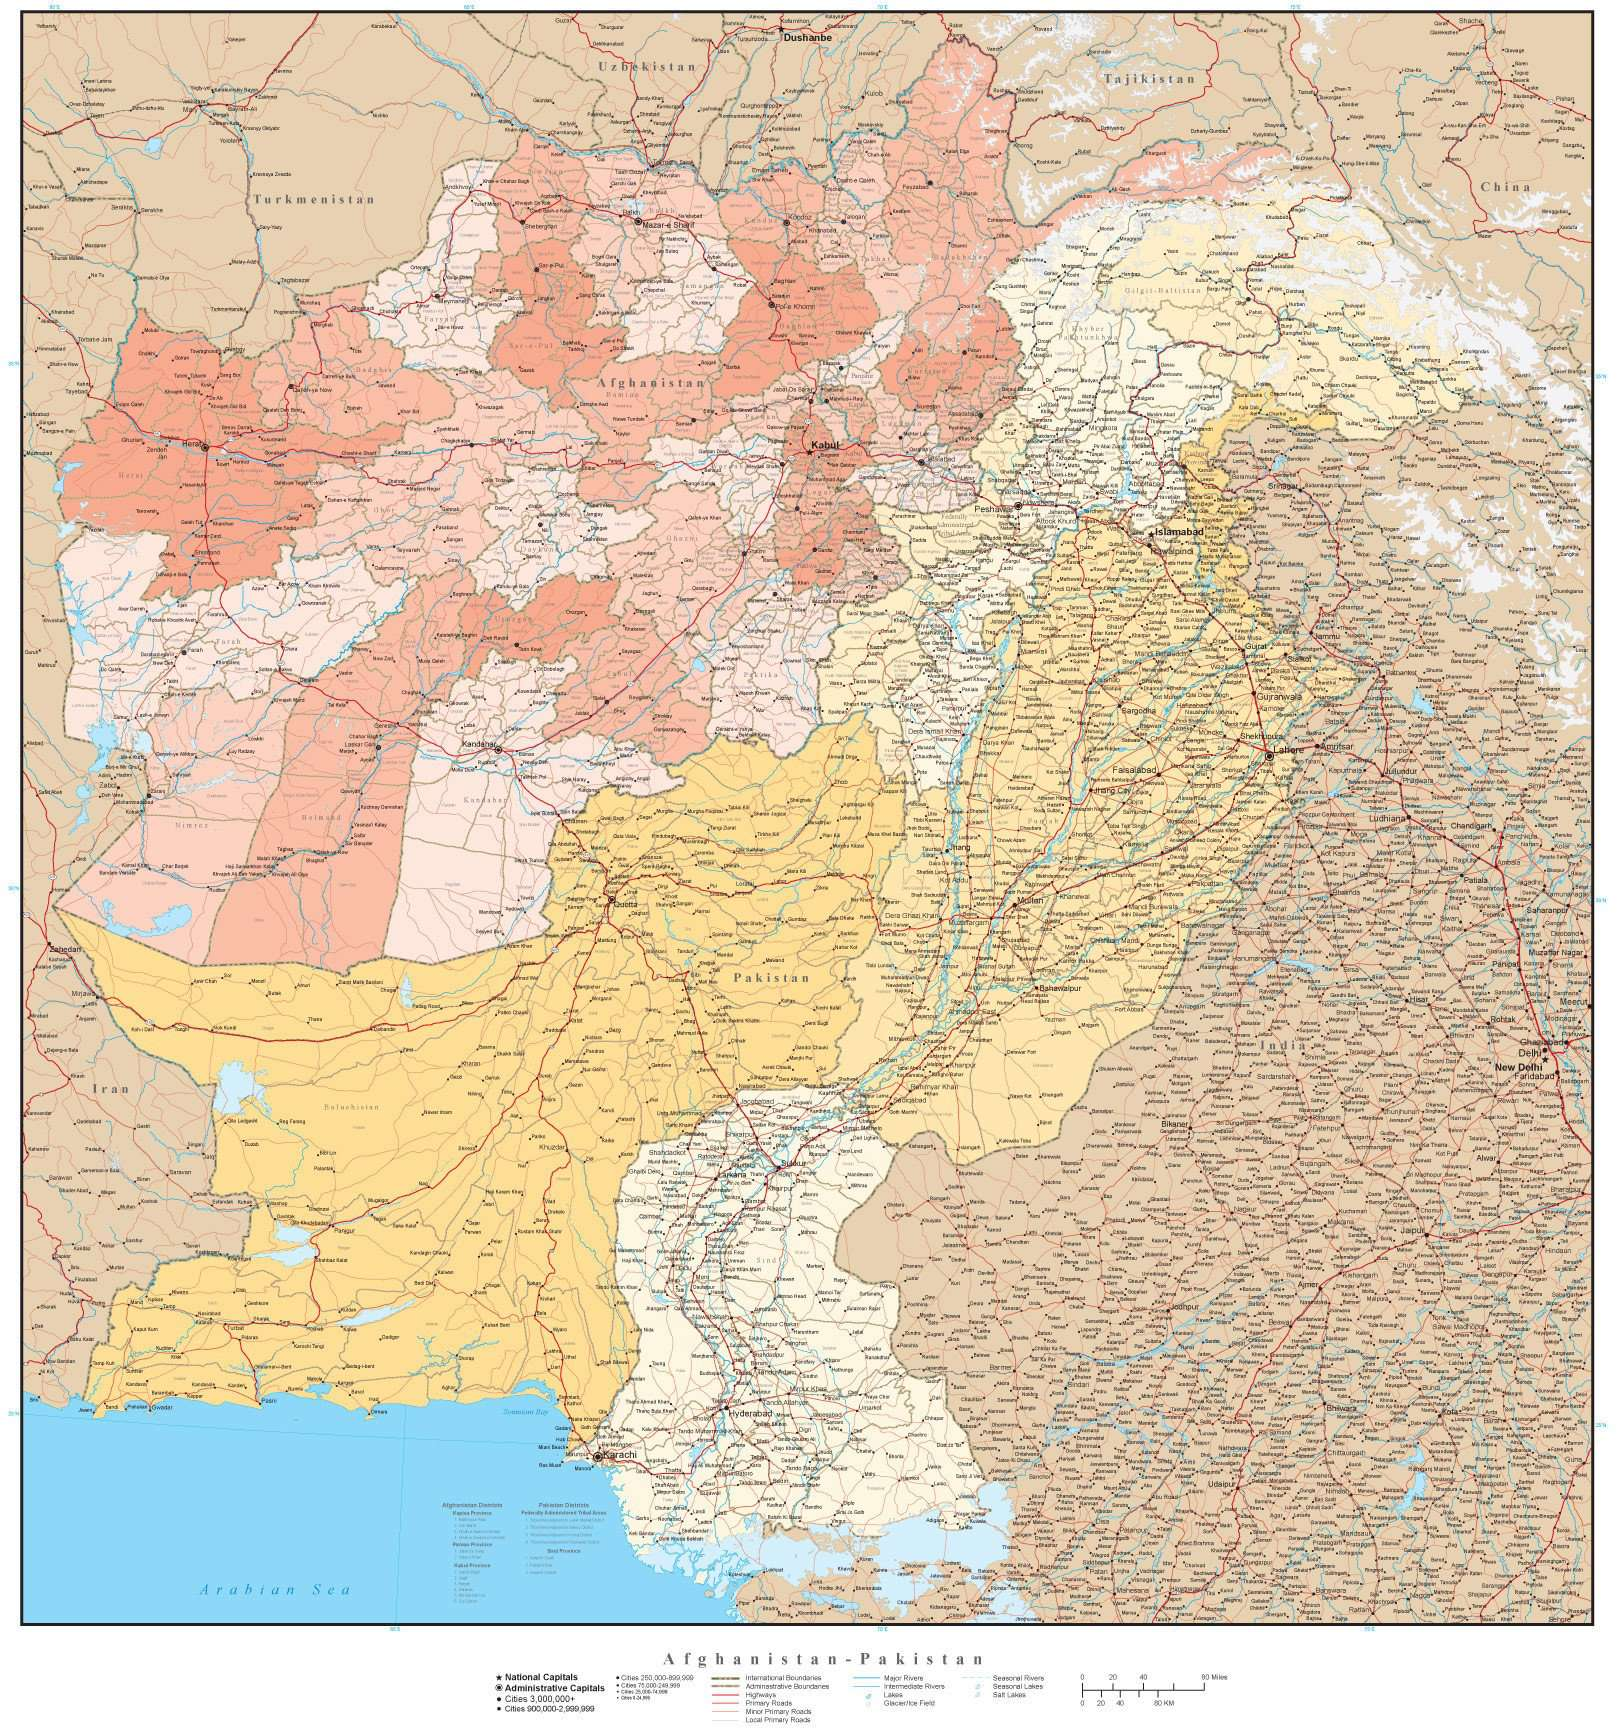 High Detail Afghanistan Pakistan Map with Provinces Districts